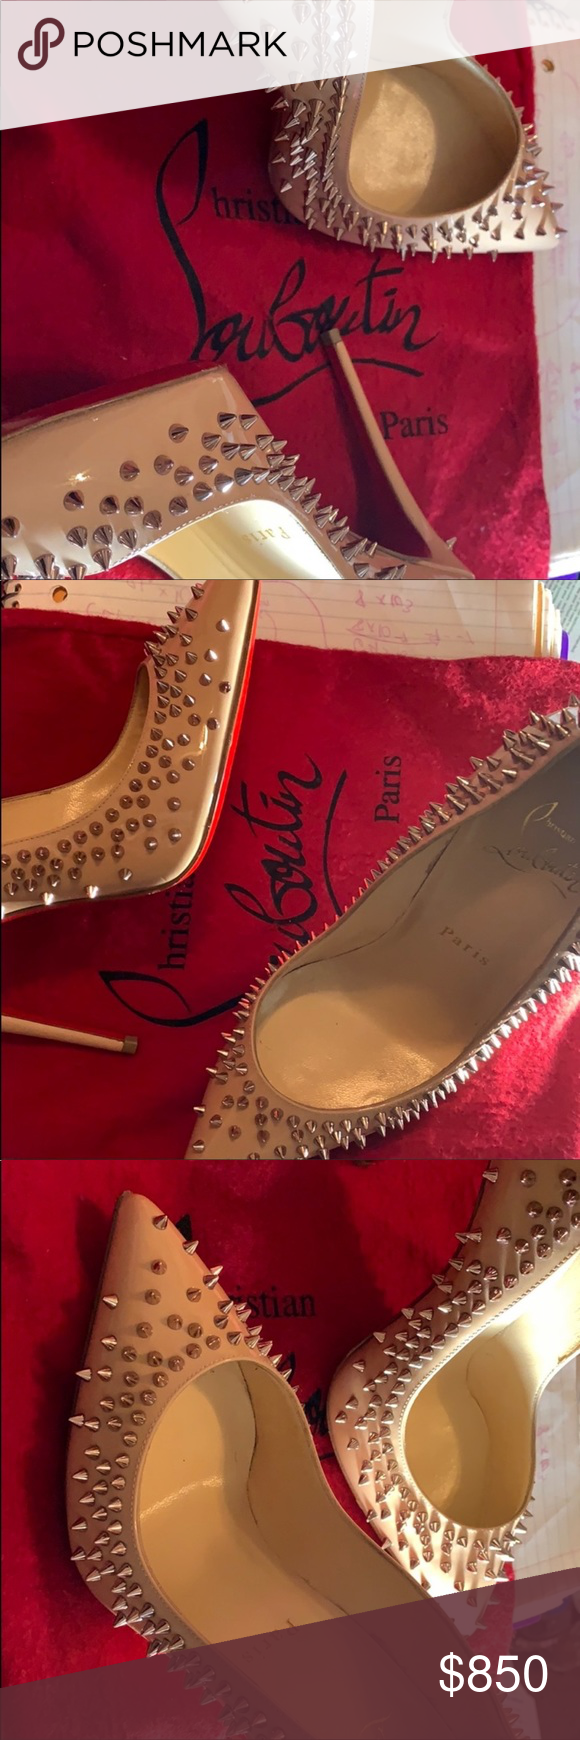 1d95e1e530c Spiked red bottoms Rose gold Christian Louboutin Shoes Heels